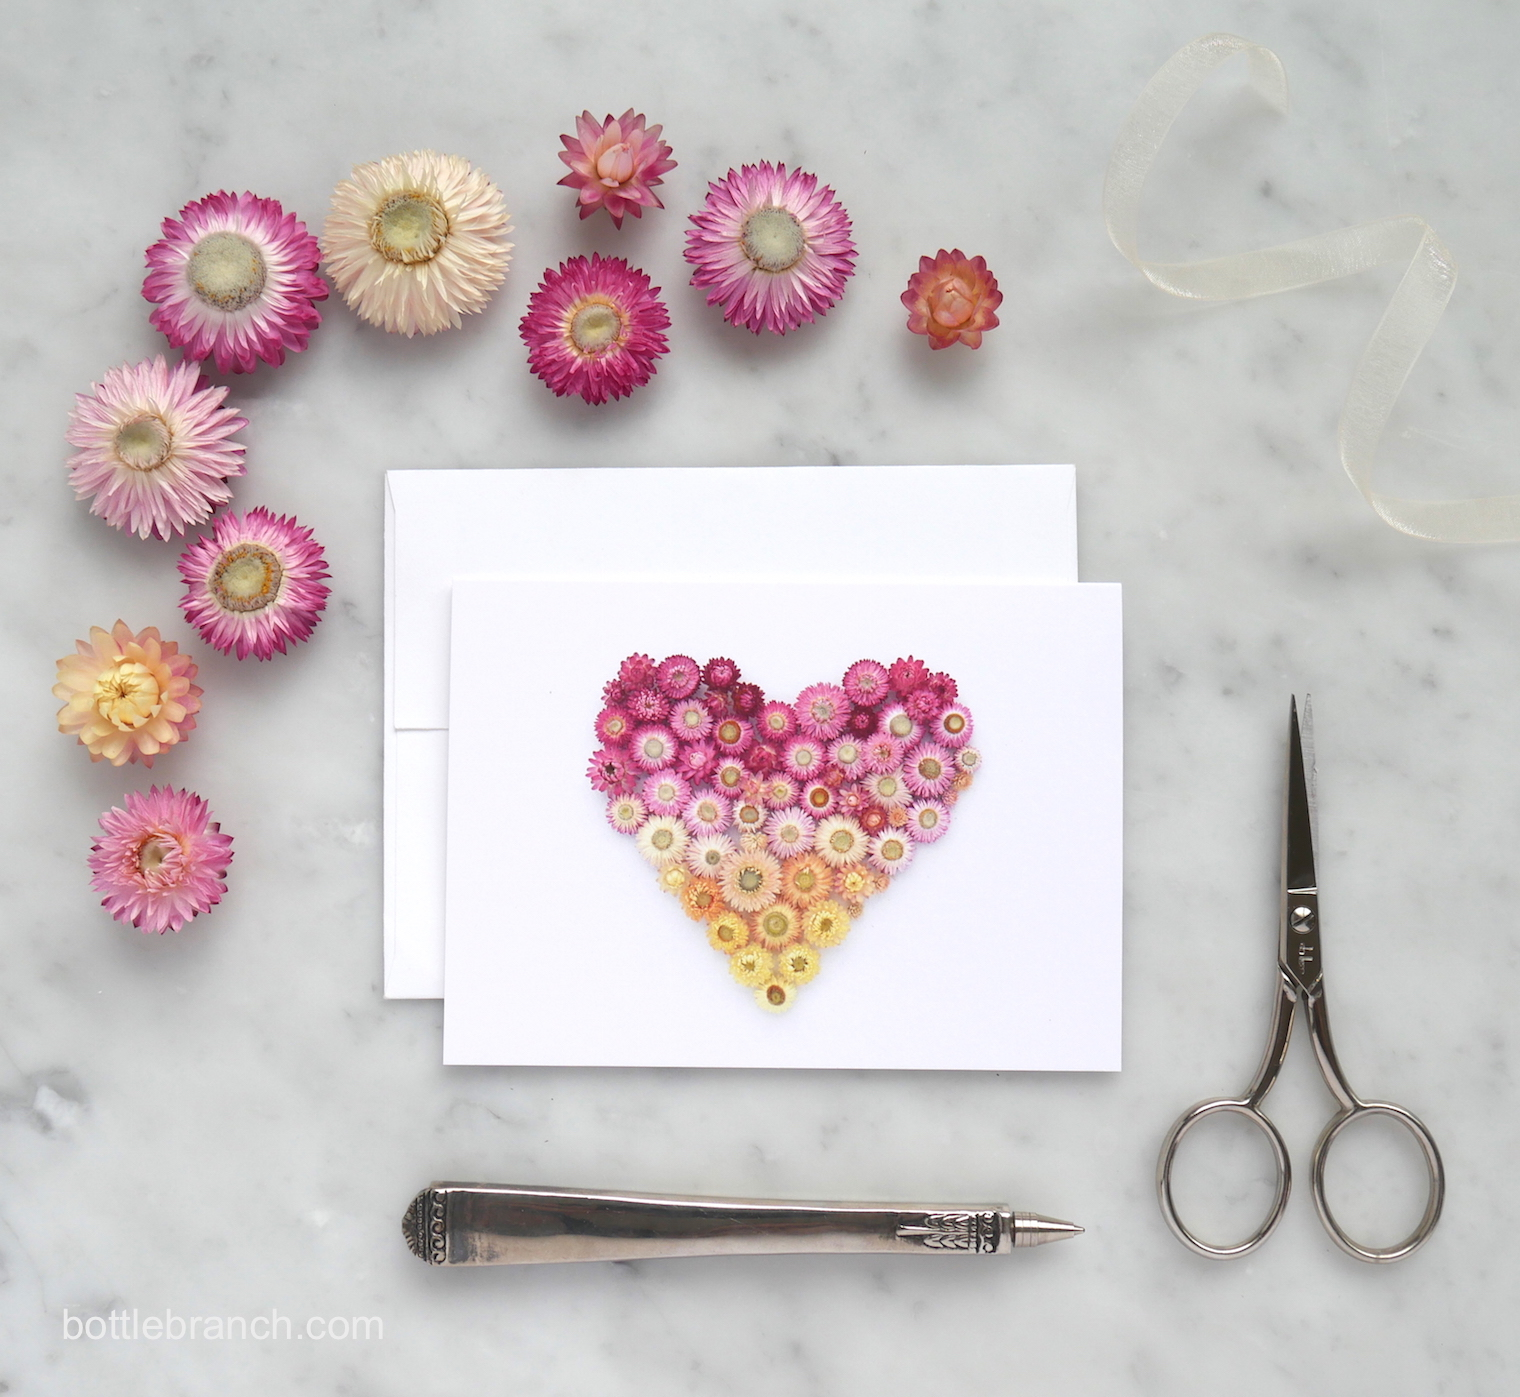 ombre-straw-flower-heart-with-straw-flowers-bottle-branch